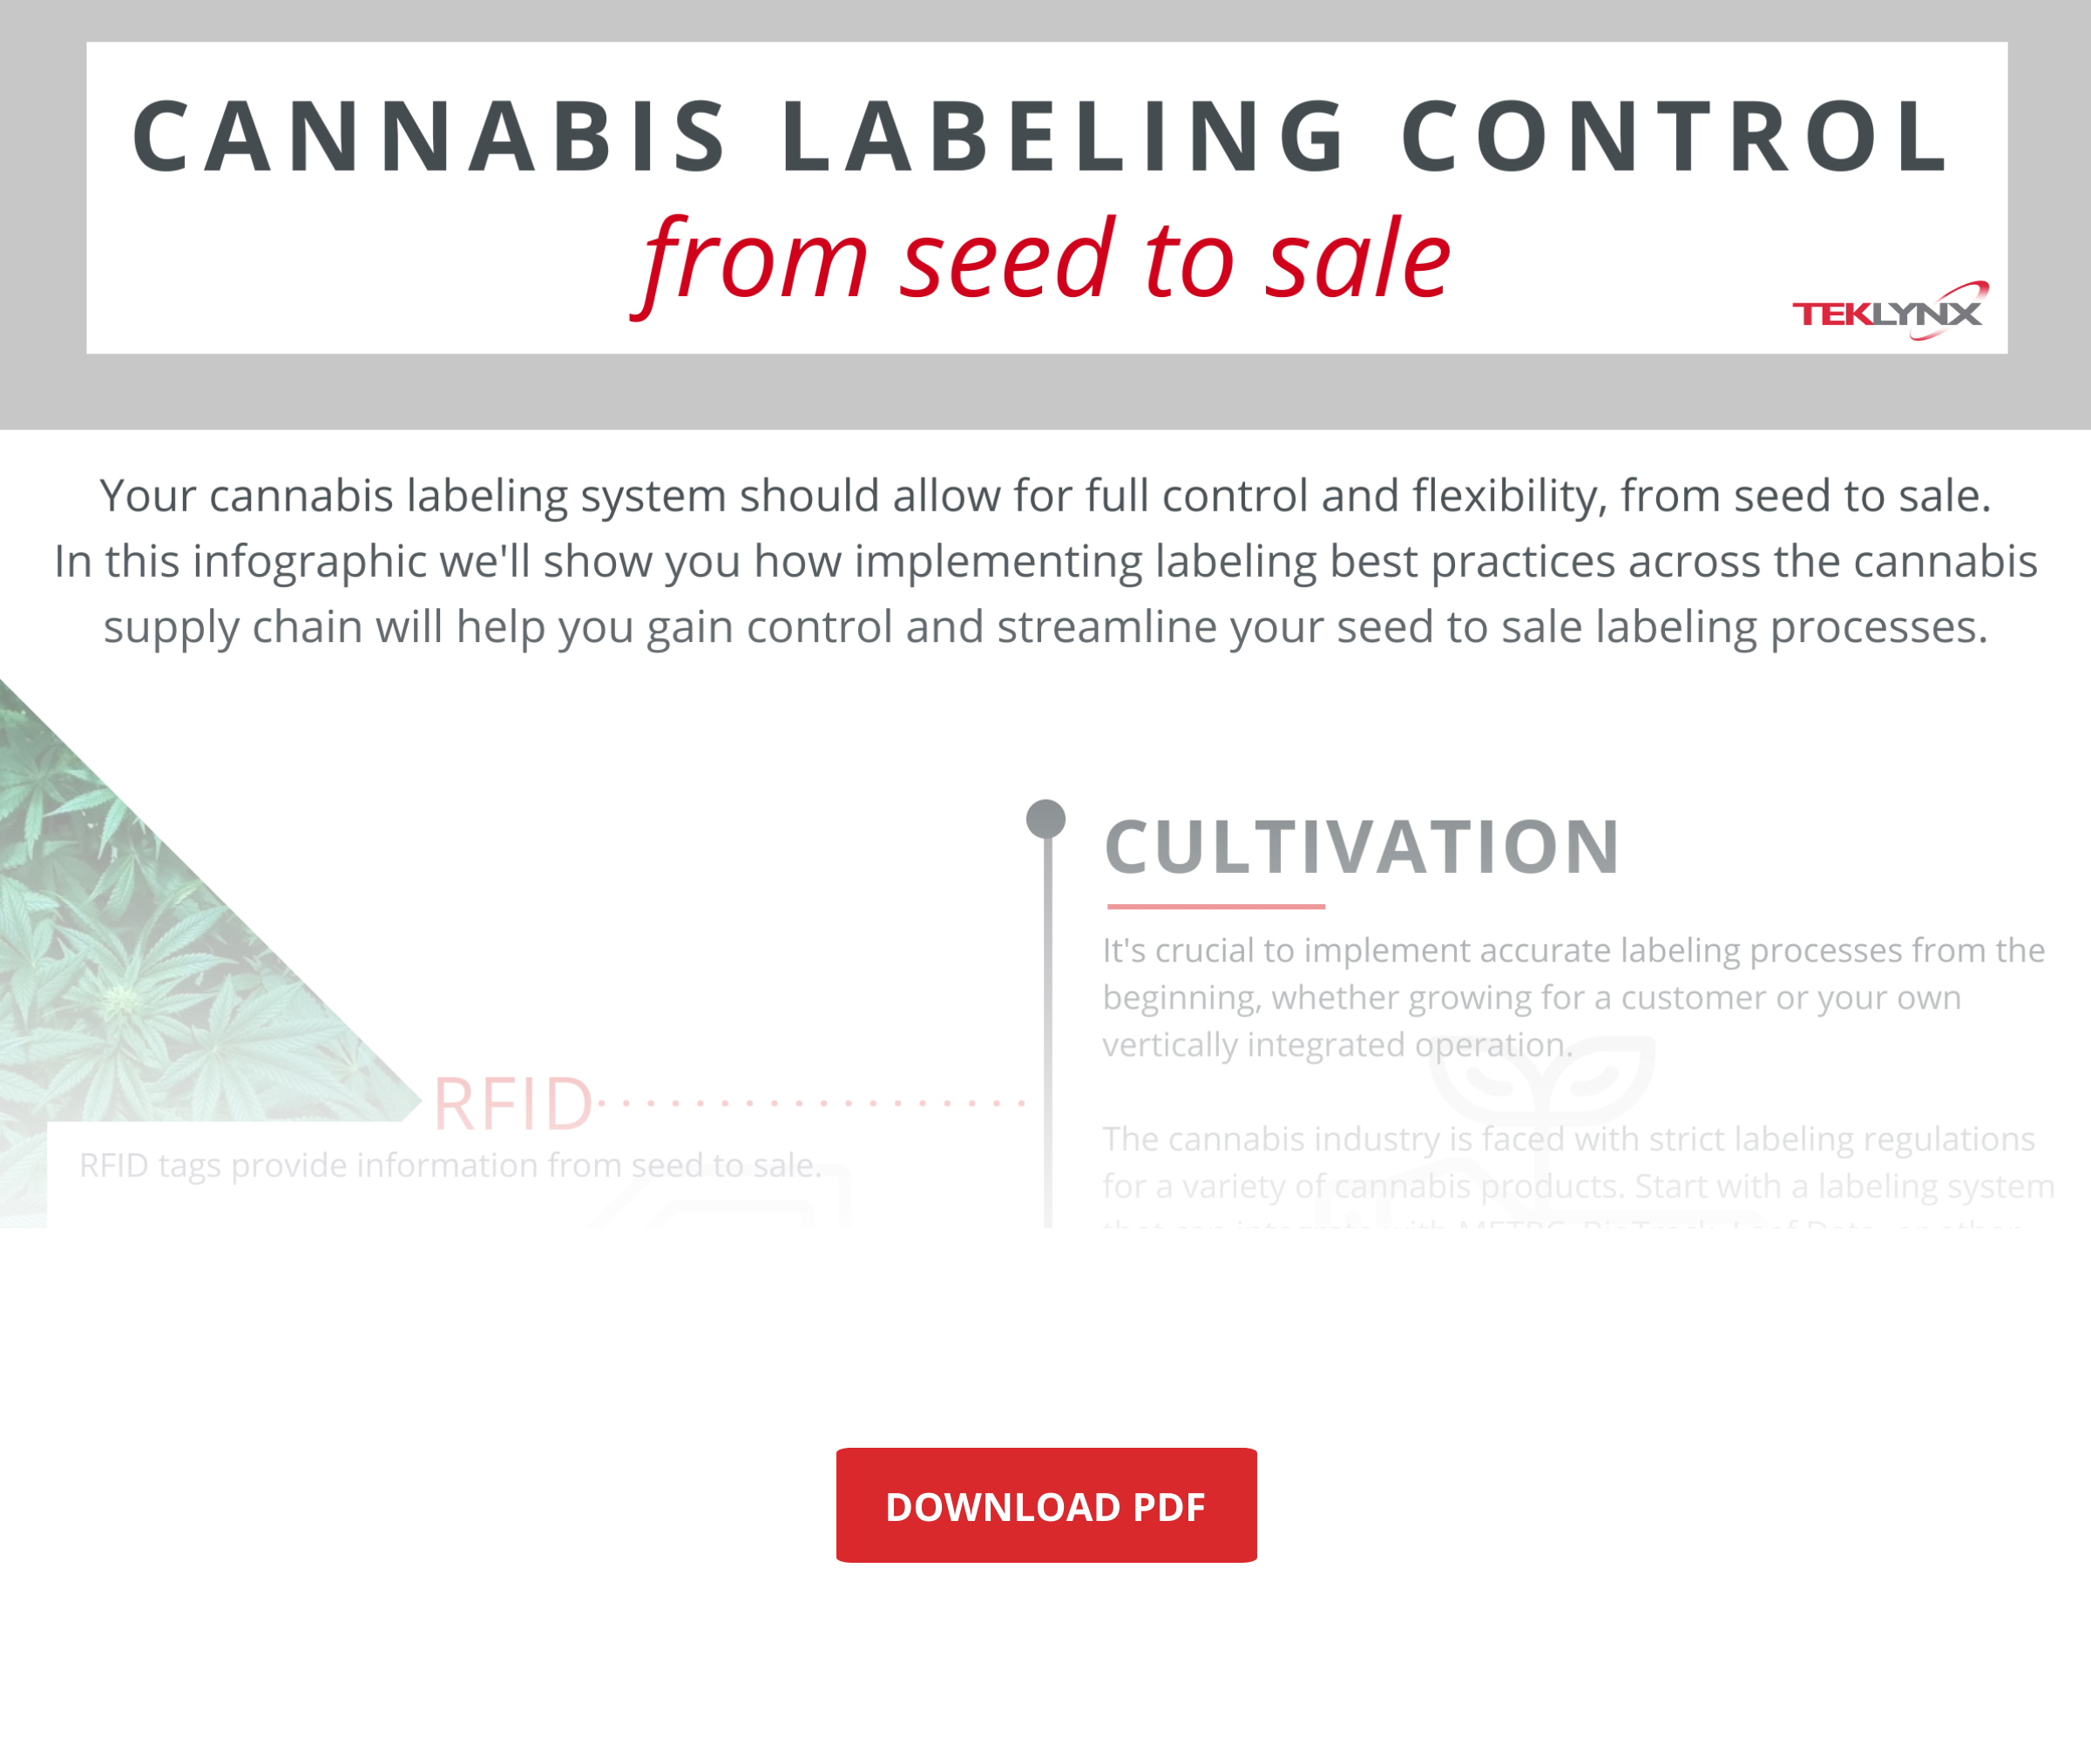 cannabis labeling infographic with fade